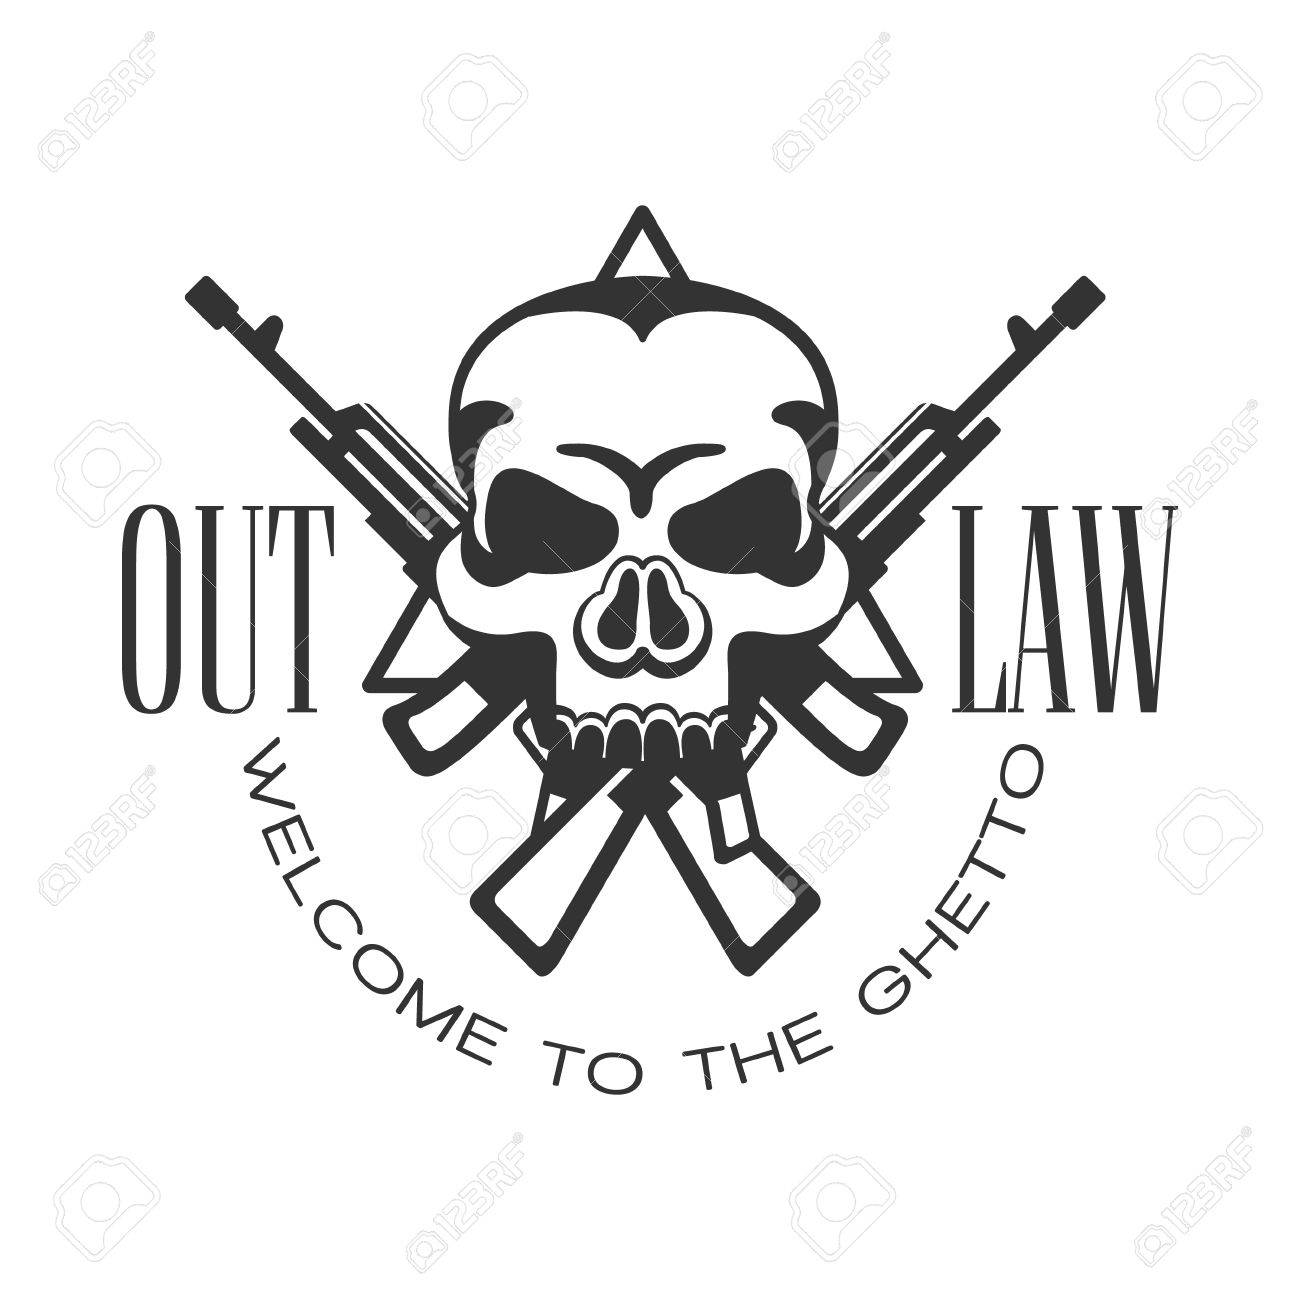 Criminal Outlaw Street Club Black And White Sign Design Template